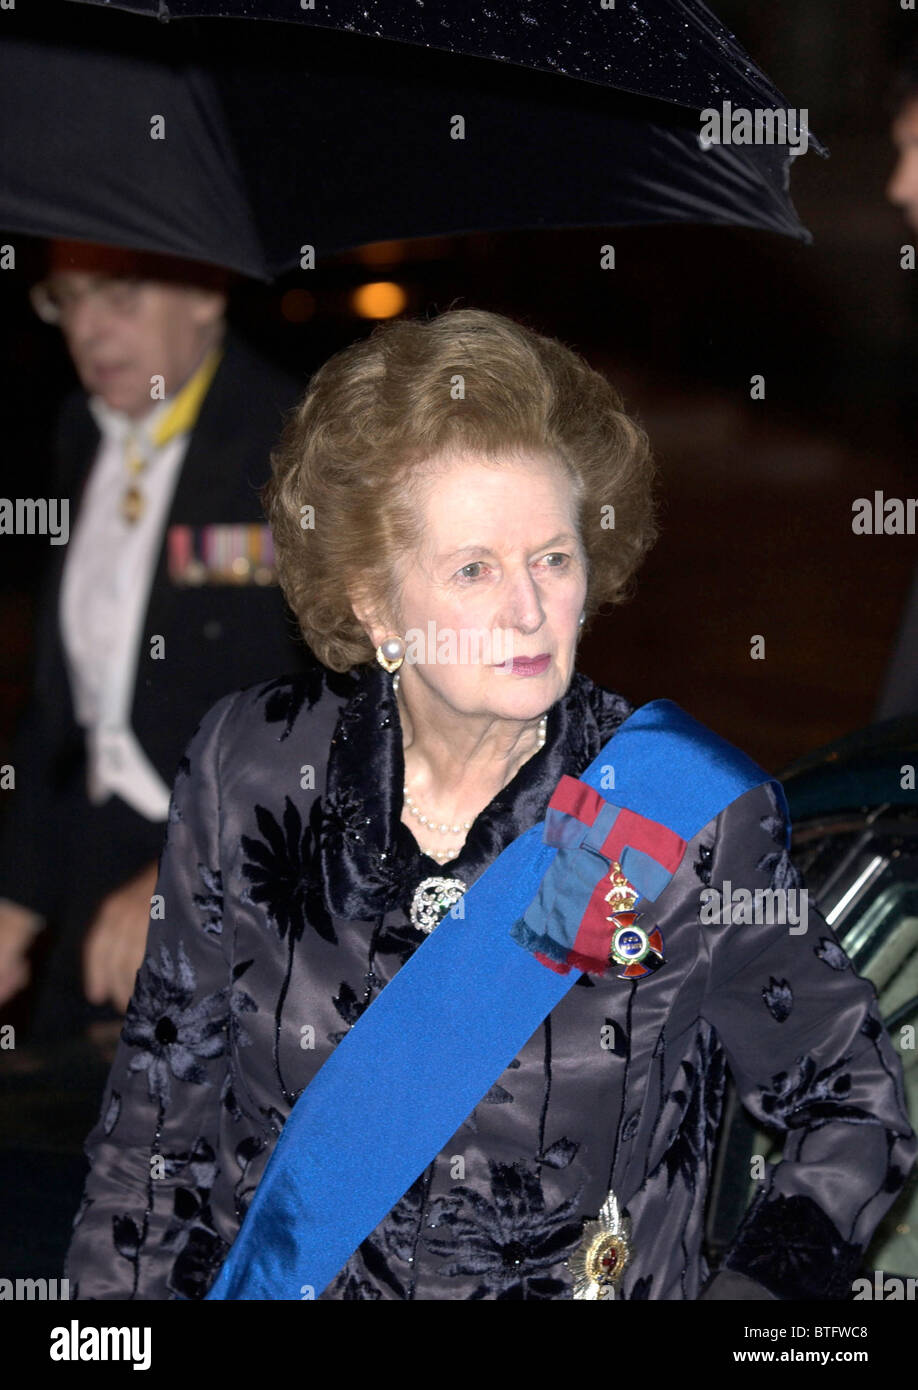 BARONESS MARGARET THATCHER [ FORMER PRIME MINISTER ] WITH DECORATIONS AND SASH AT BANQUET AT THE GUILDHALL IN LONDON - Stock Image